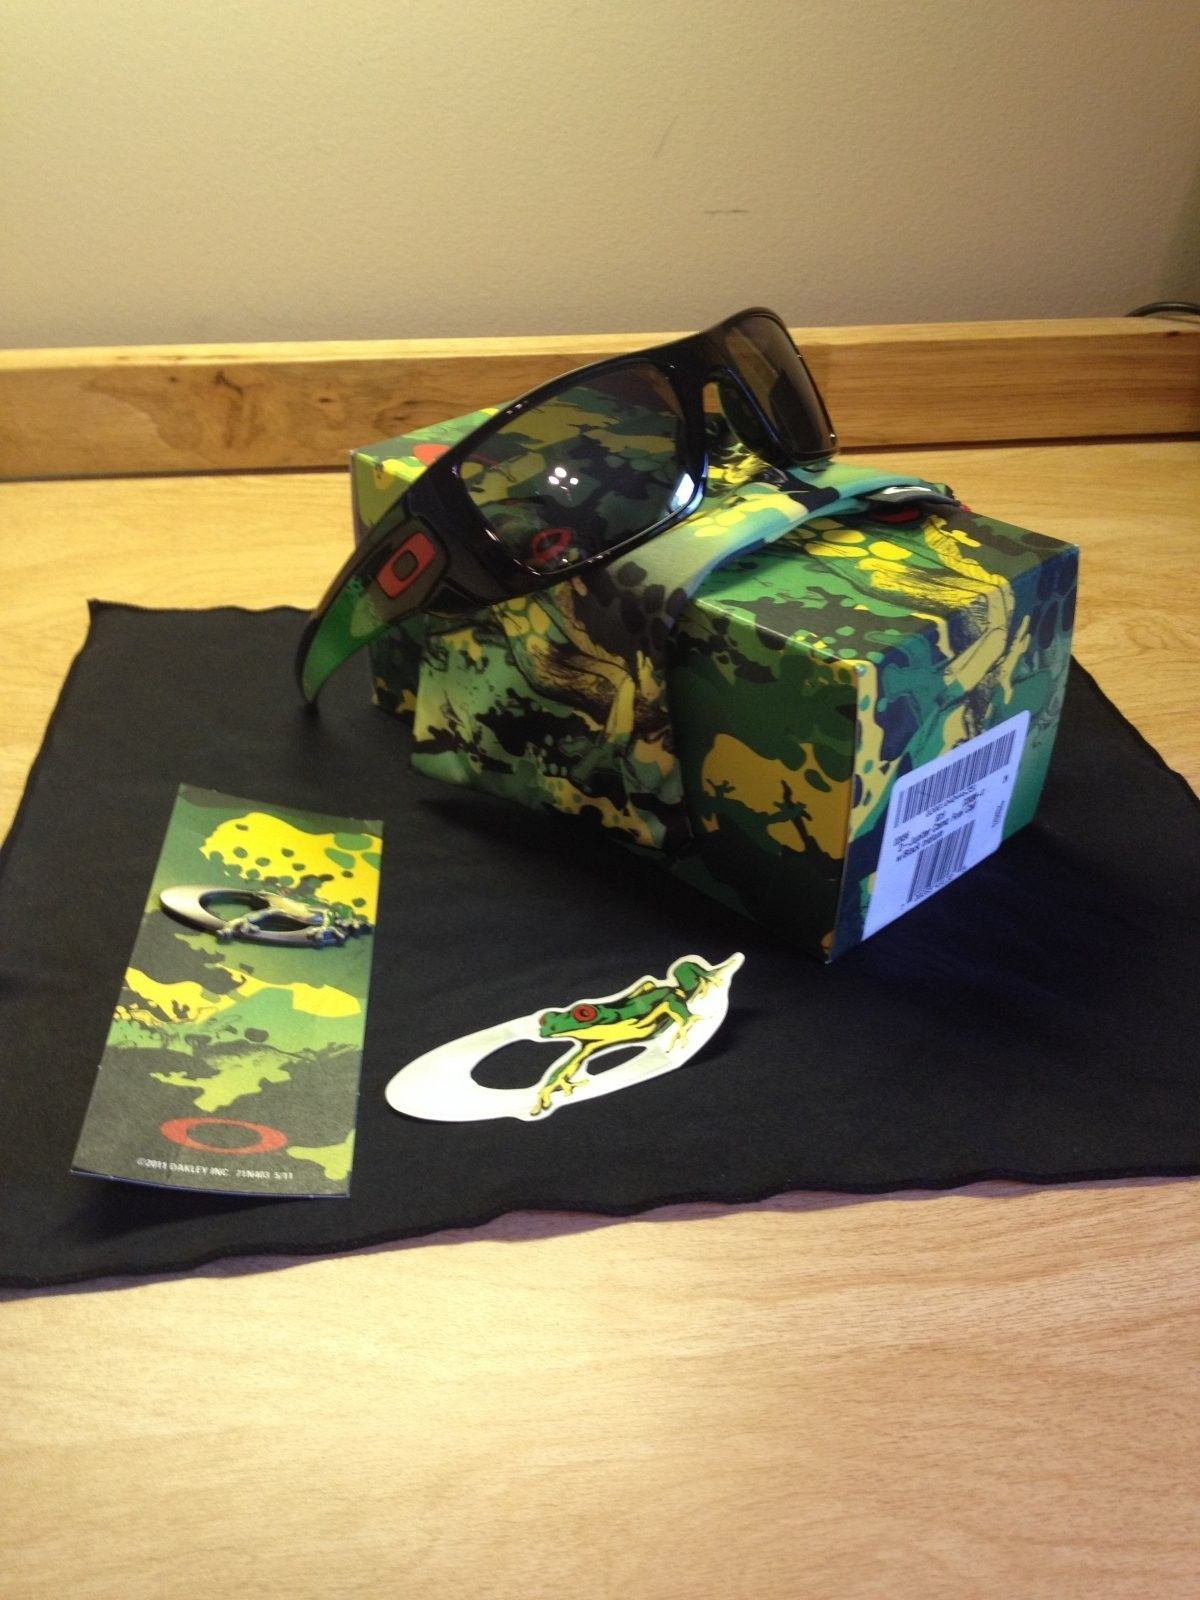 Flak Jackets! Fuel Cells! And More! - photo 5.JPG